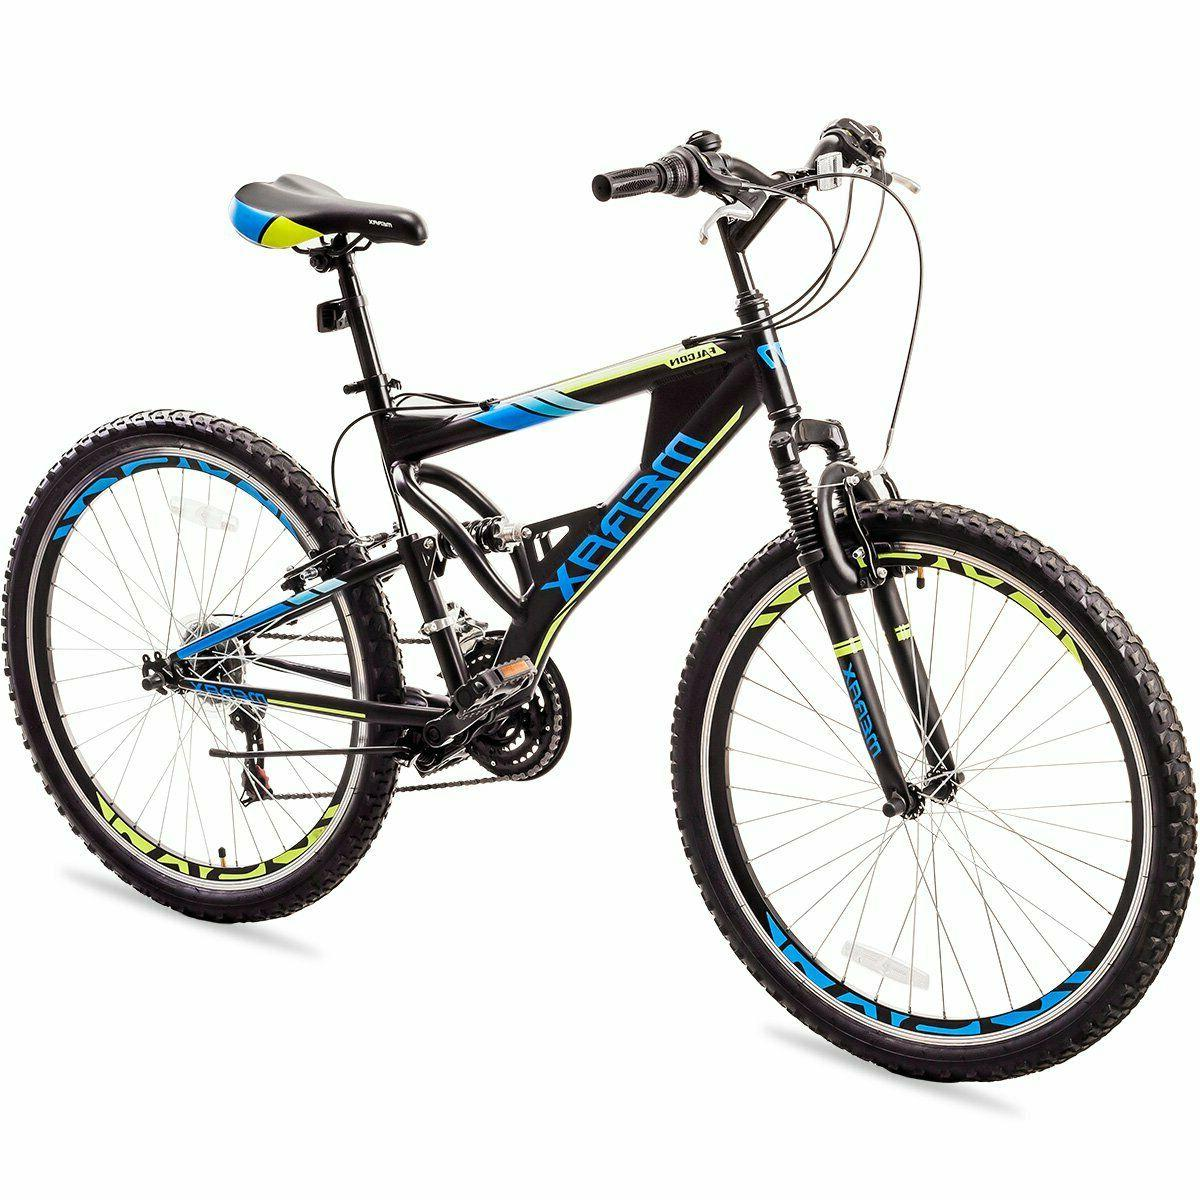 Aluminum Frame 21-Speed 26-inch Bicycle